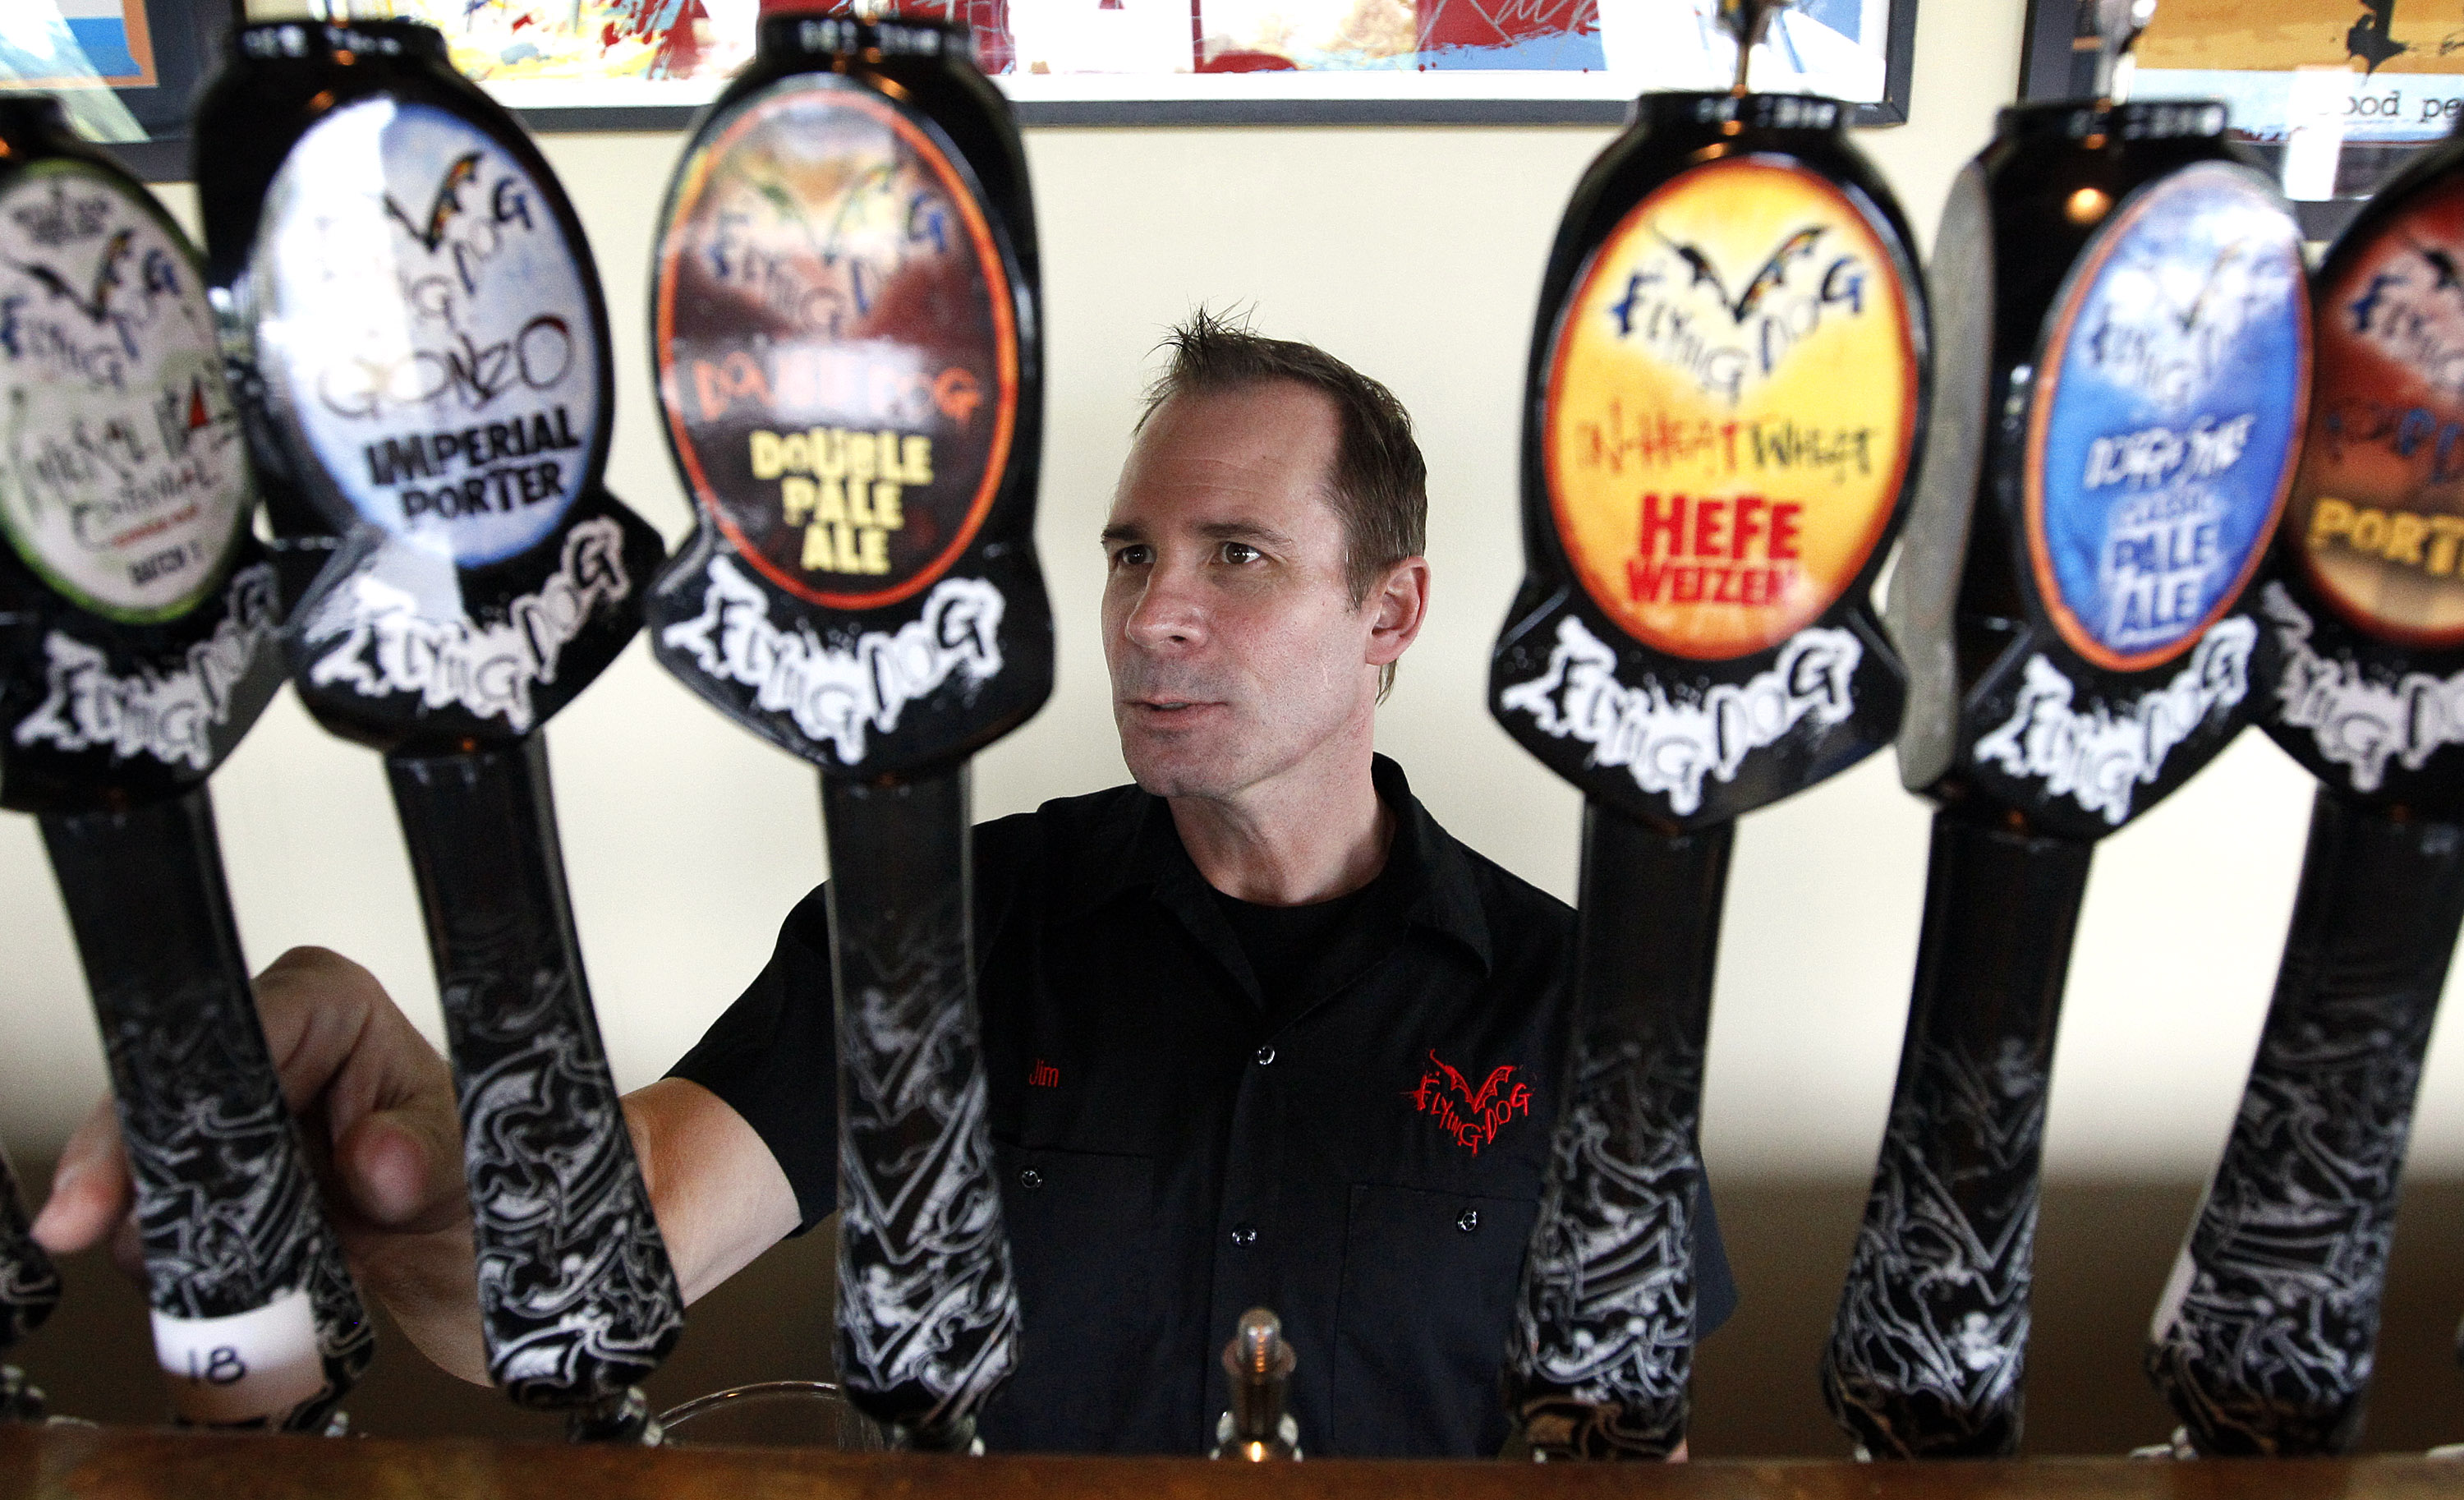 Flying Dog, Dogfish Head move down on largest craft brewers list